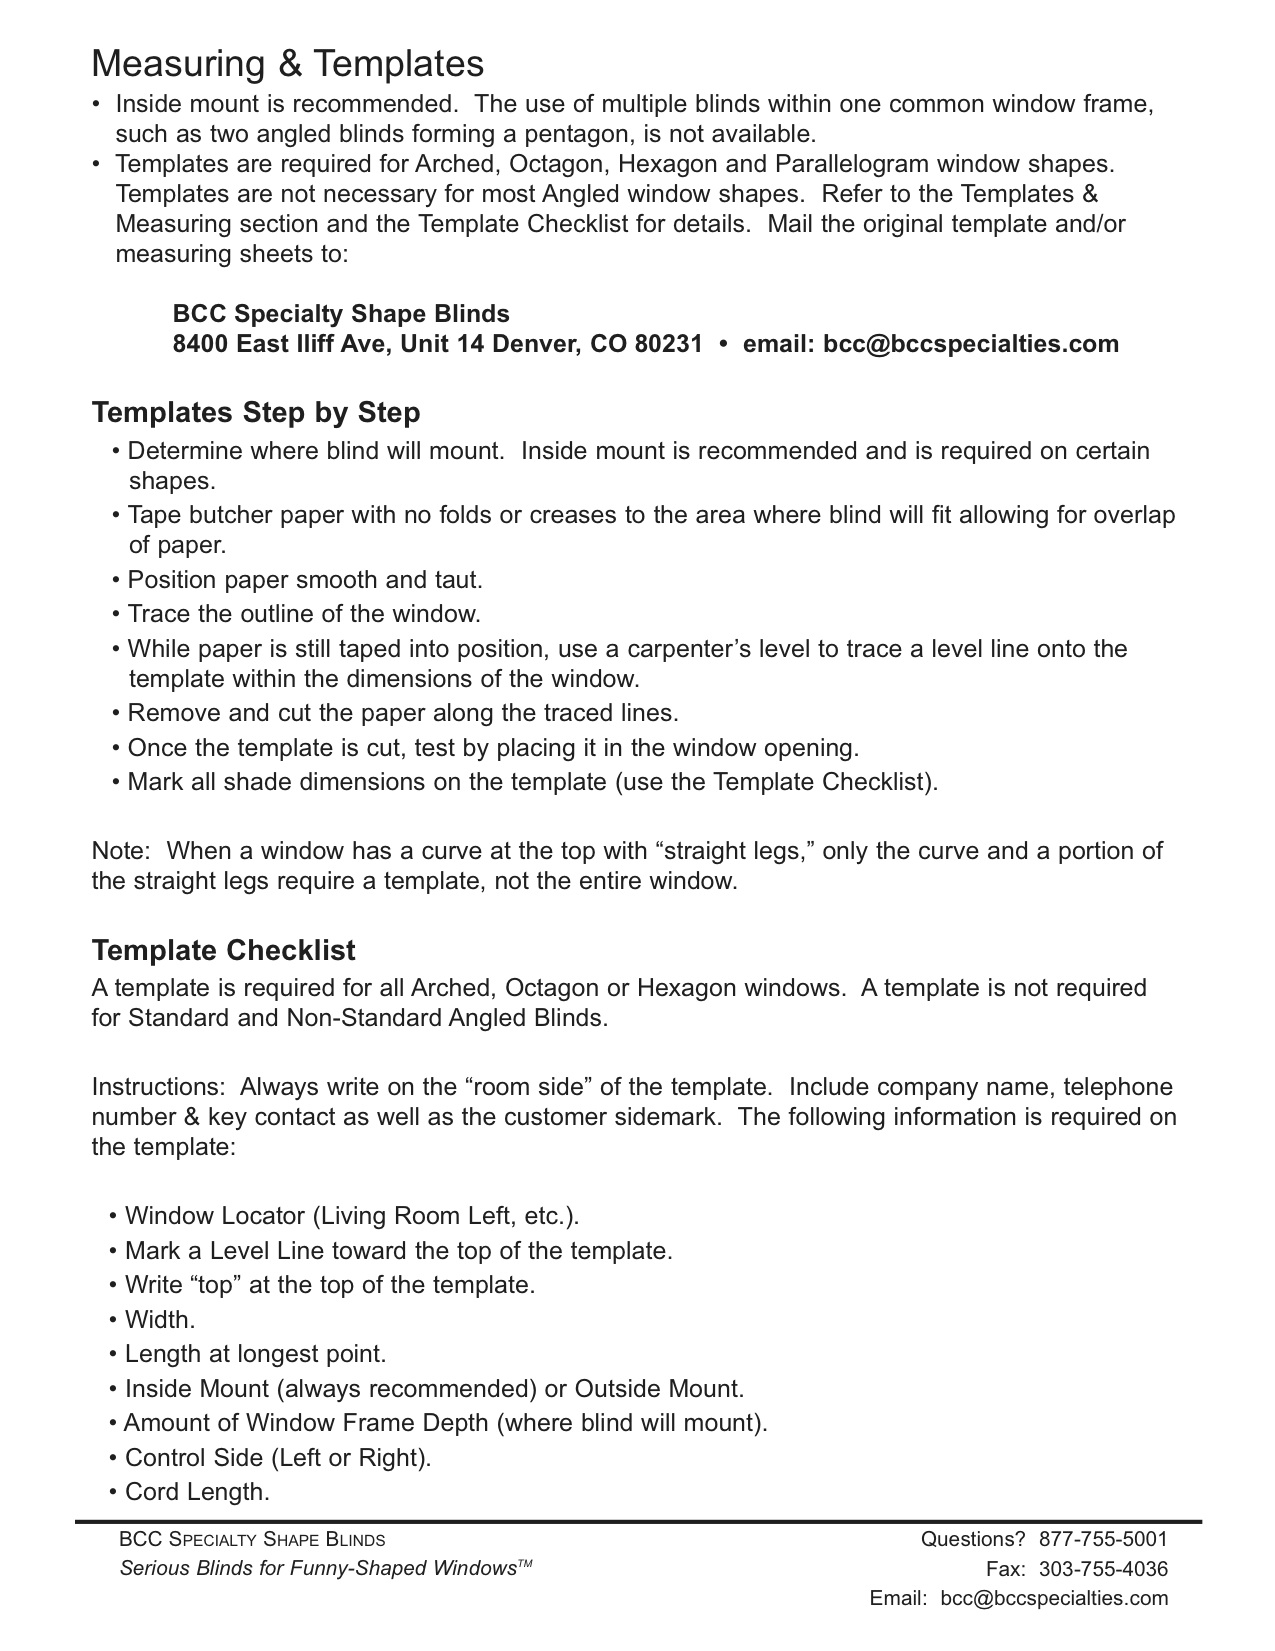 Bcc Specialties Measure Amp Template Instructions